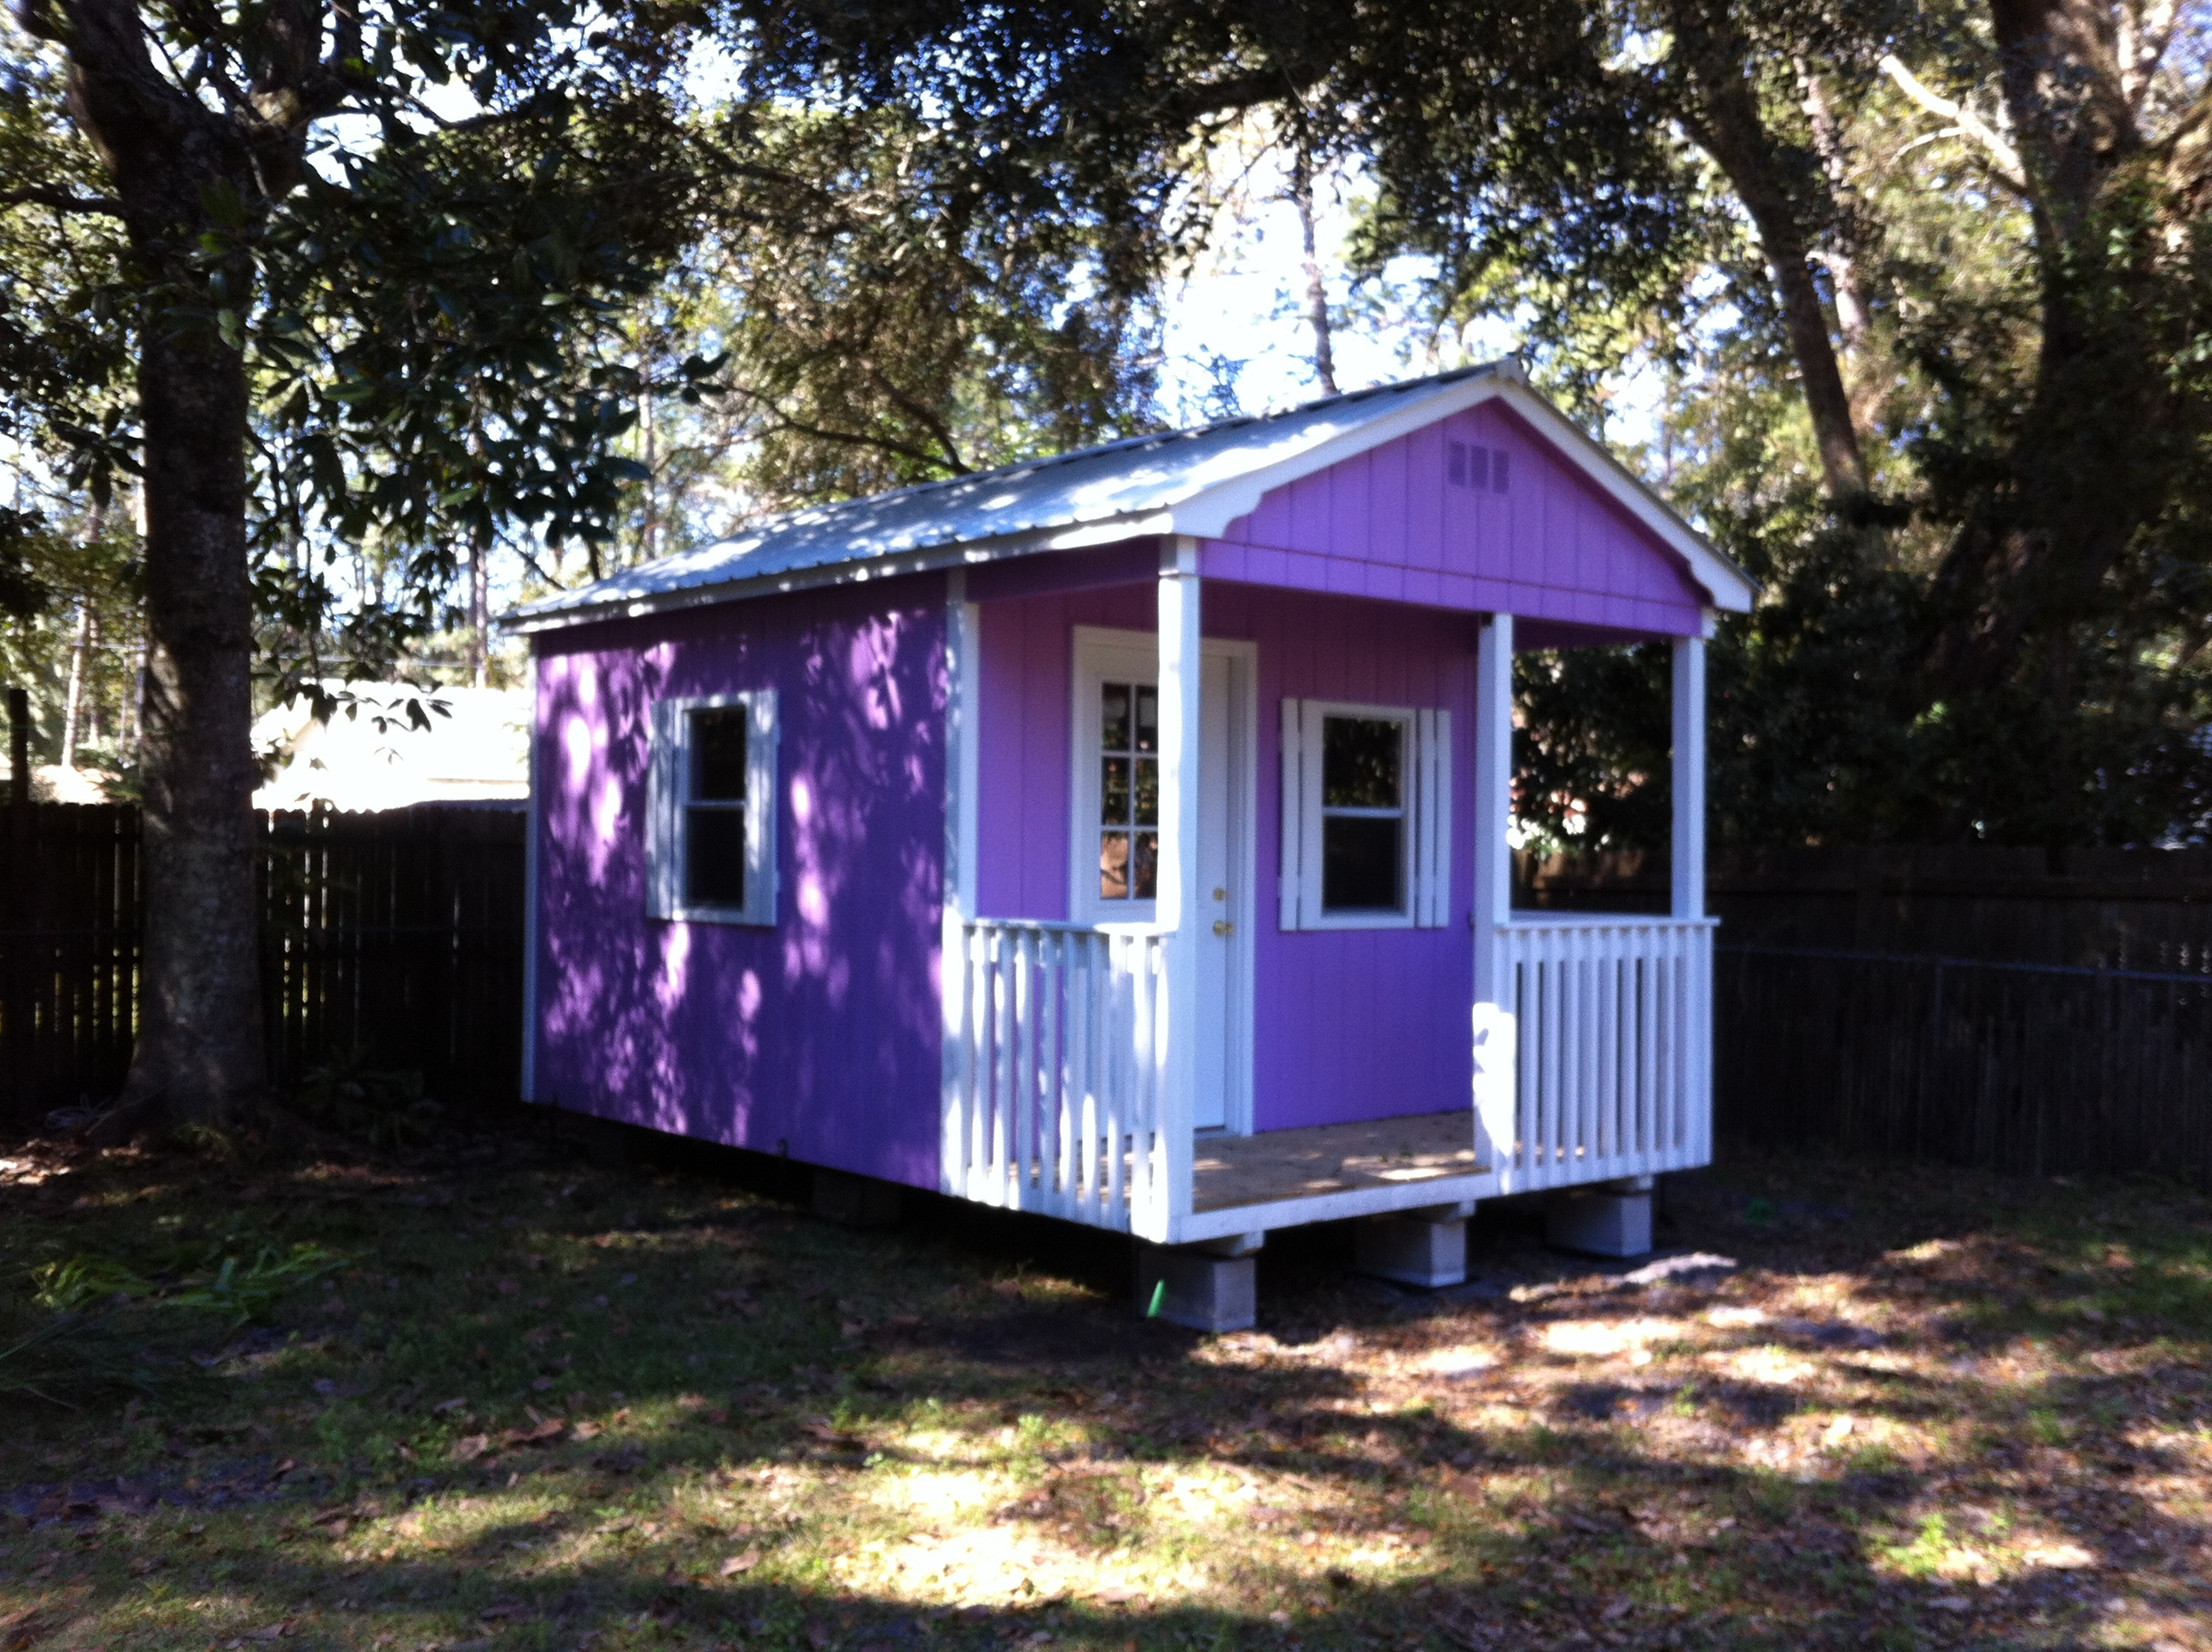 Portable Sheds Gainesville FL & Portable Sheds Gainesville FL | Storage Sheds u0026 Portable Carports